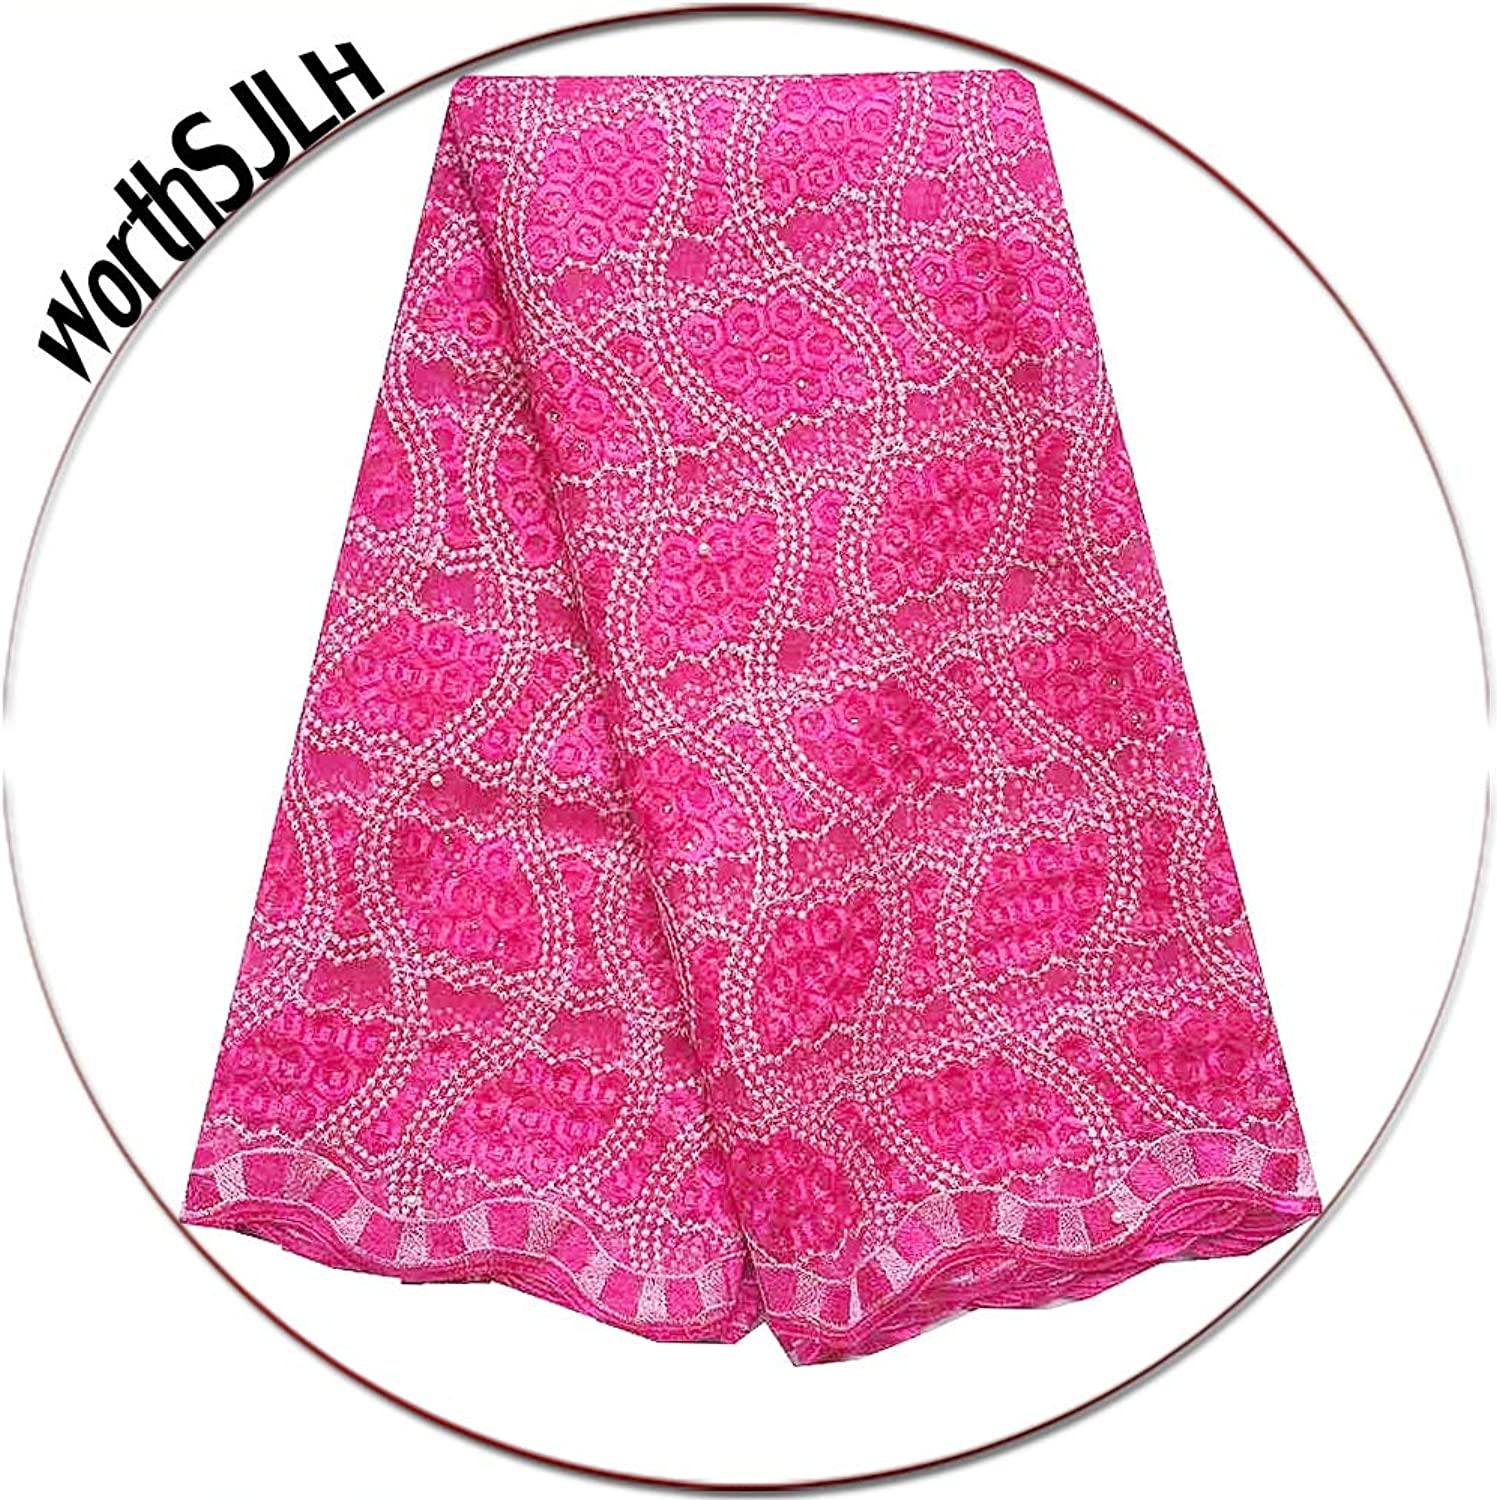 WorthSJLH Peach Green Lace Fabric 2019 African French Lace Fabric for Women Dress Guipure Tulle Lace Fabric LF881 (Fushia Pink)